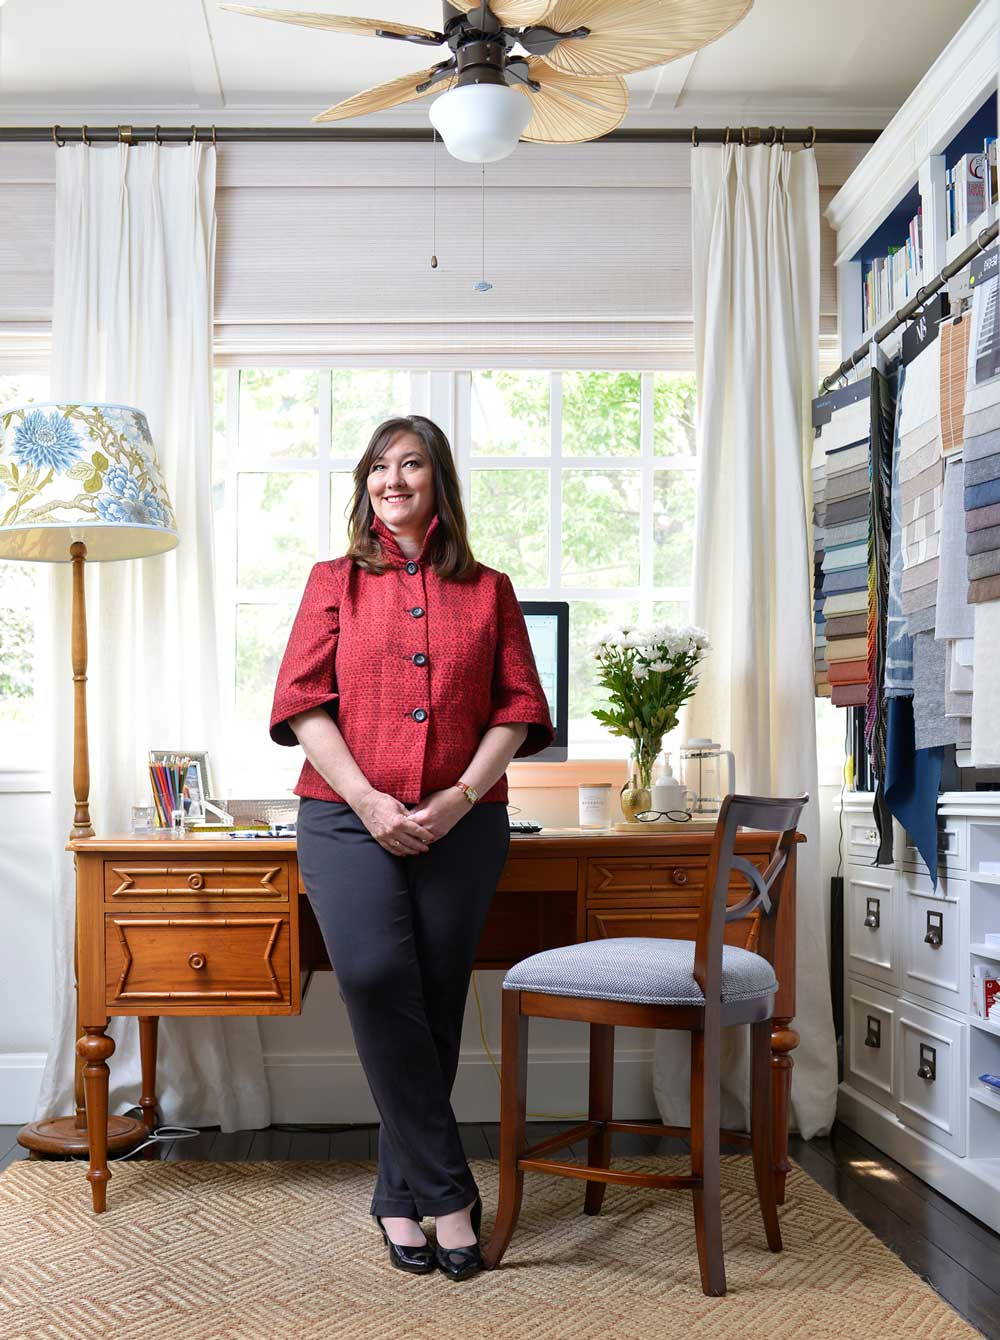 nadine neilson forever home classic decorating in canberra